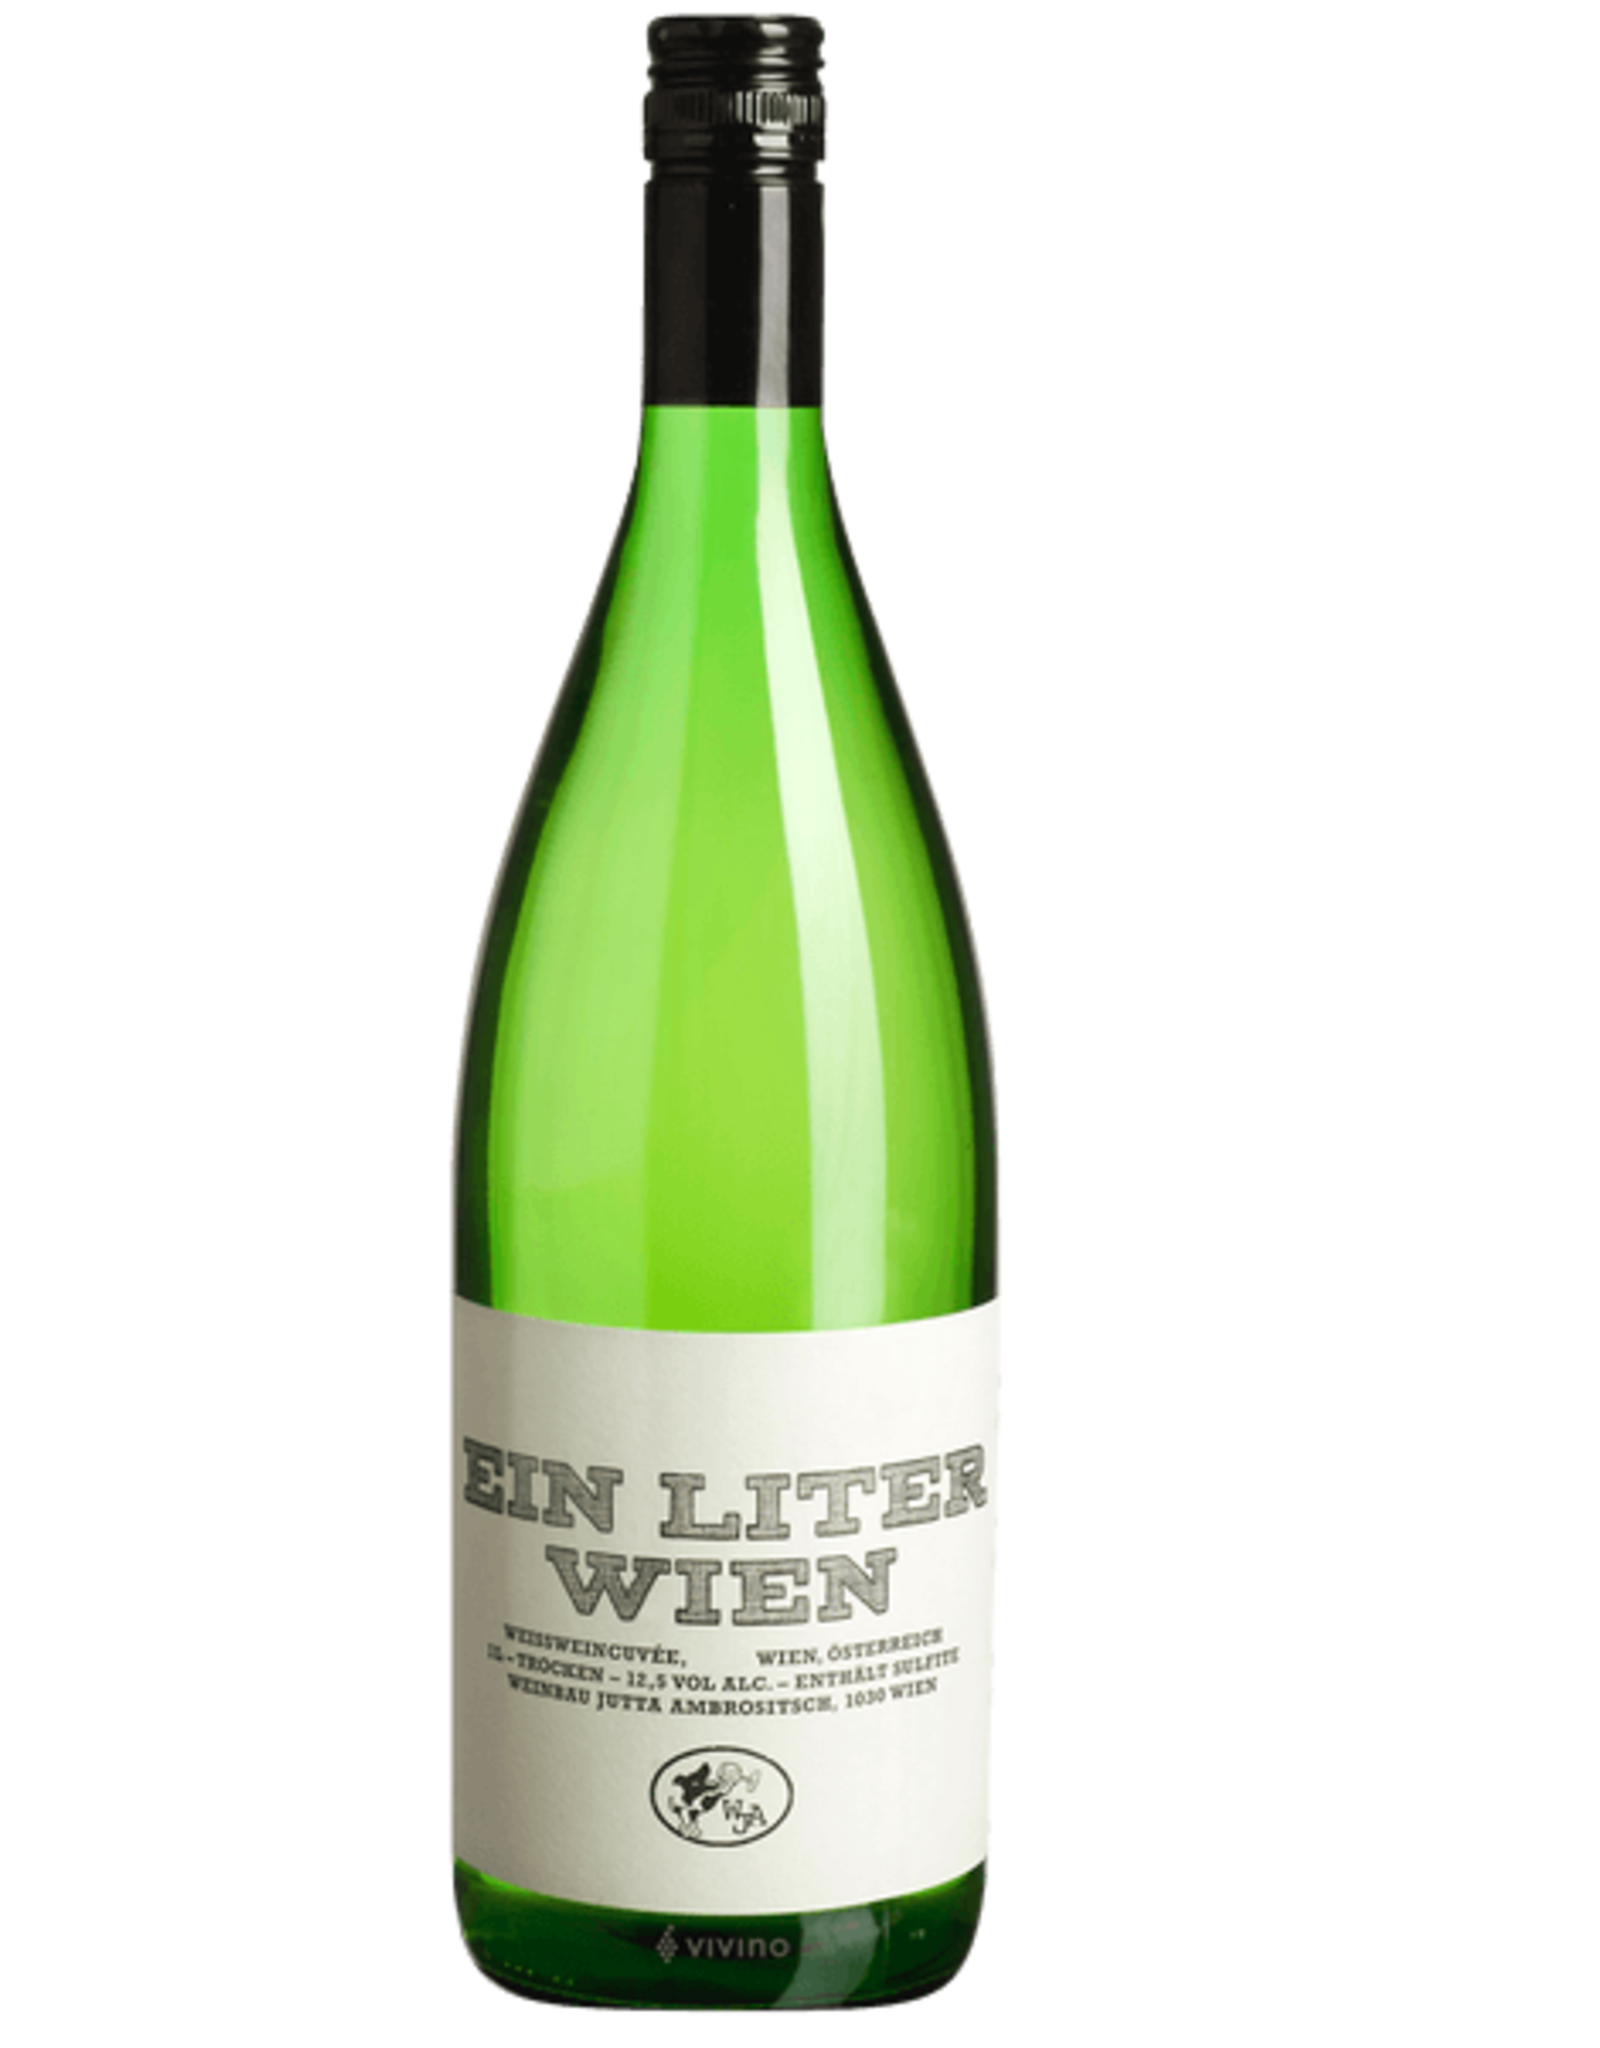 New Item Jutta Ambrositsch Ein Liter Wien White Blend 2018 1L